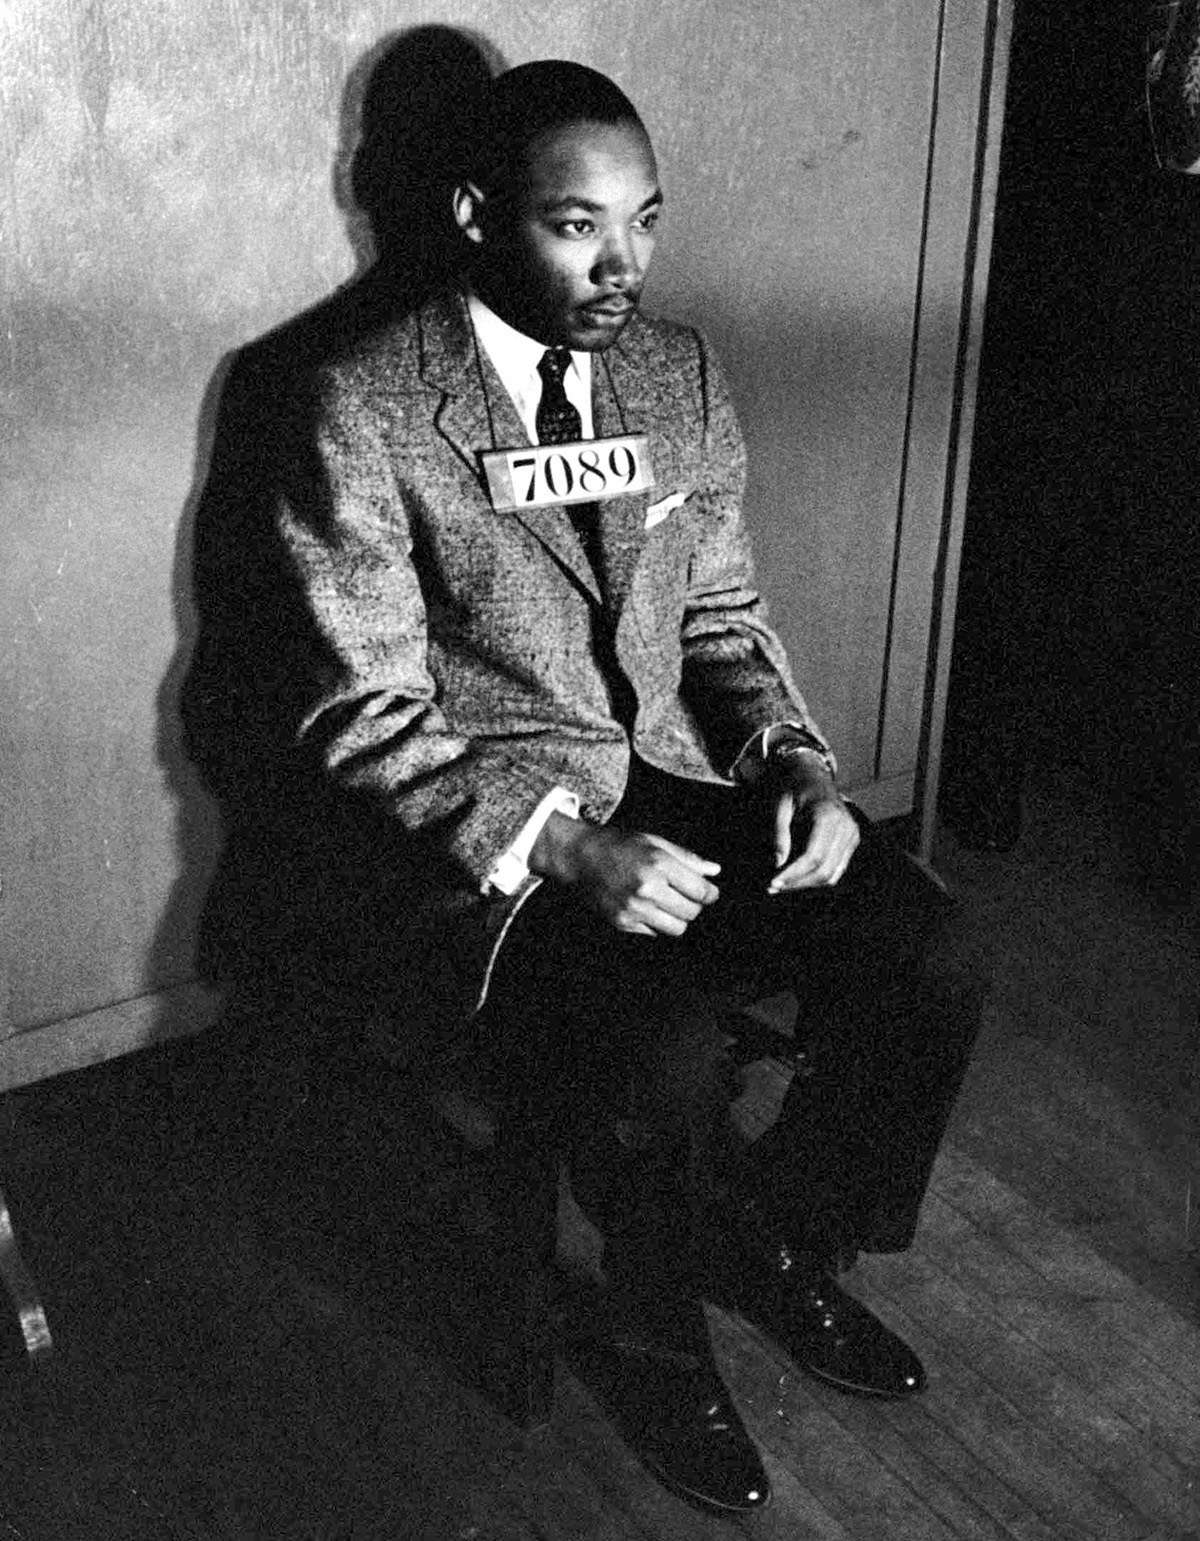 short essay about martin luther king jr I have a dream speech copyright 1963, martin luther king, jr author: rev martin luther king, jr subject: march on washington, august 28, 1963 created date.